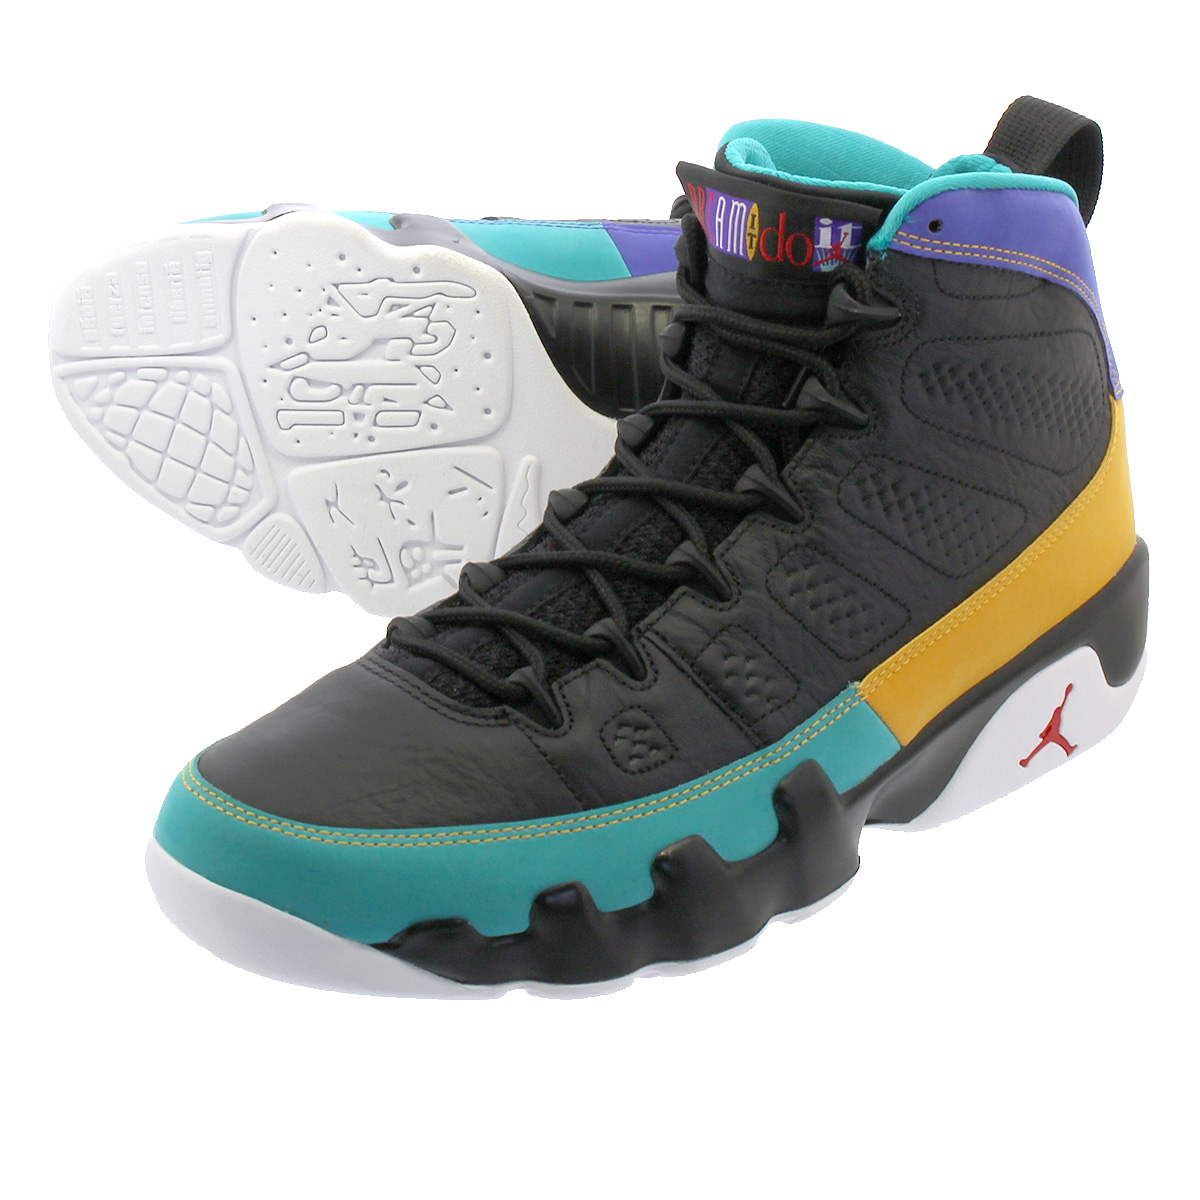 ebee7dda701ad8 NIKE AIR JORDAN 9 RETRO Nike air Jordan 9 nostalgic BLACK UNIVERSITY RED DARK  CONCORD 302